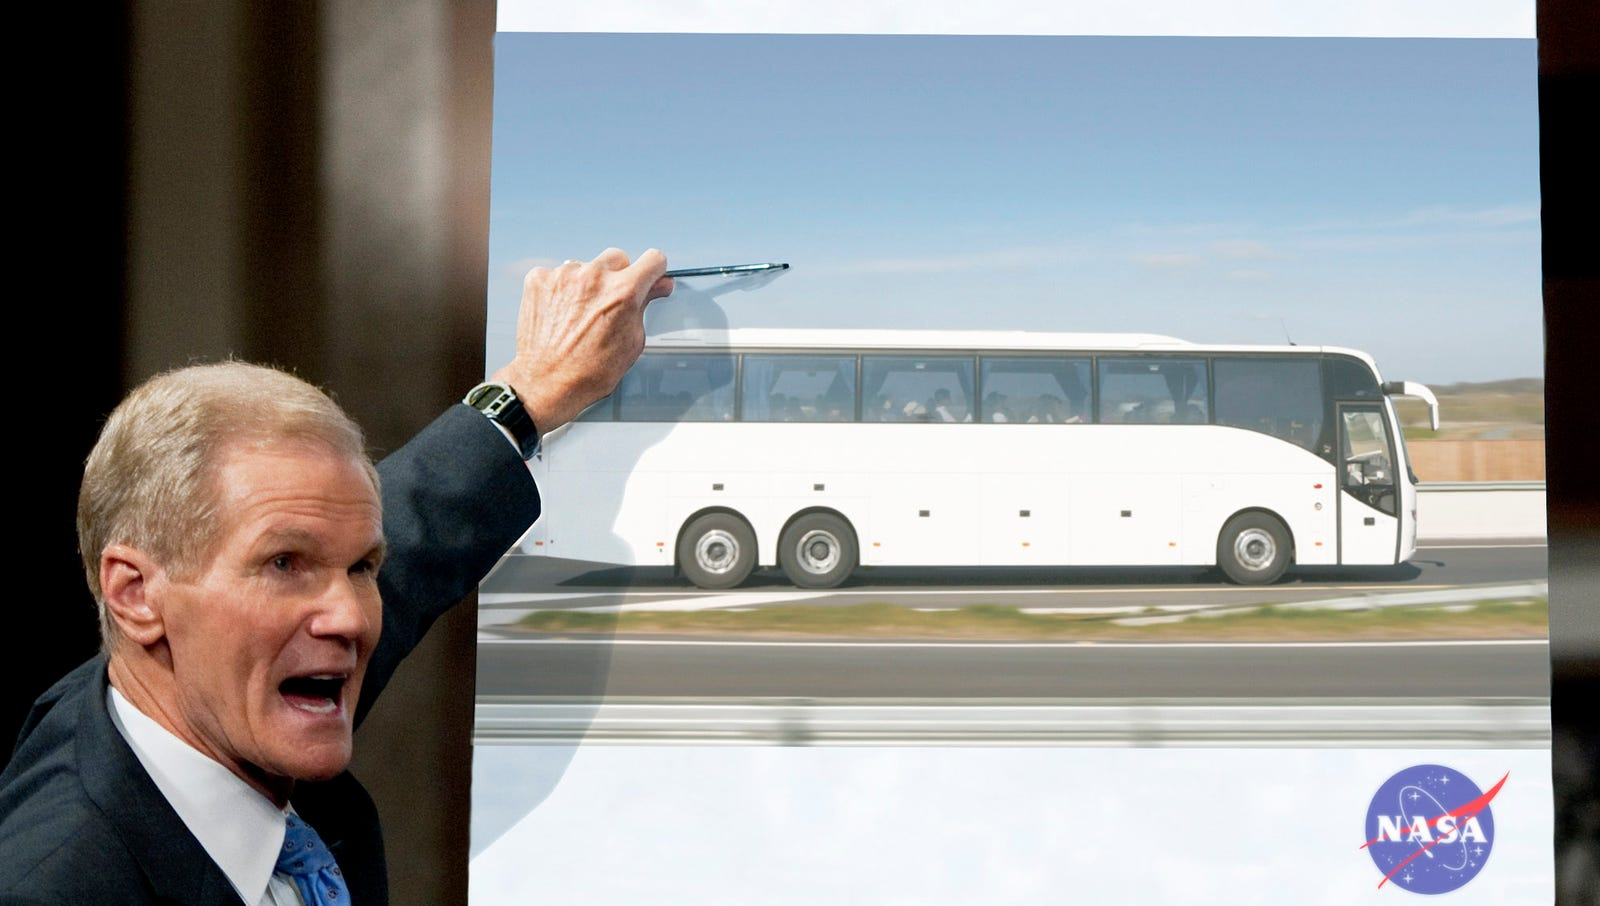 NASA Announces Plans To Put Man On Bus To Cleveland